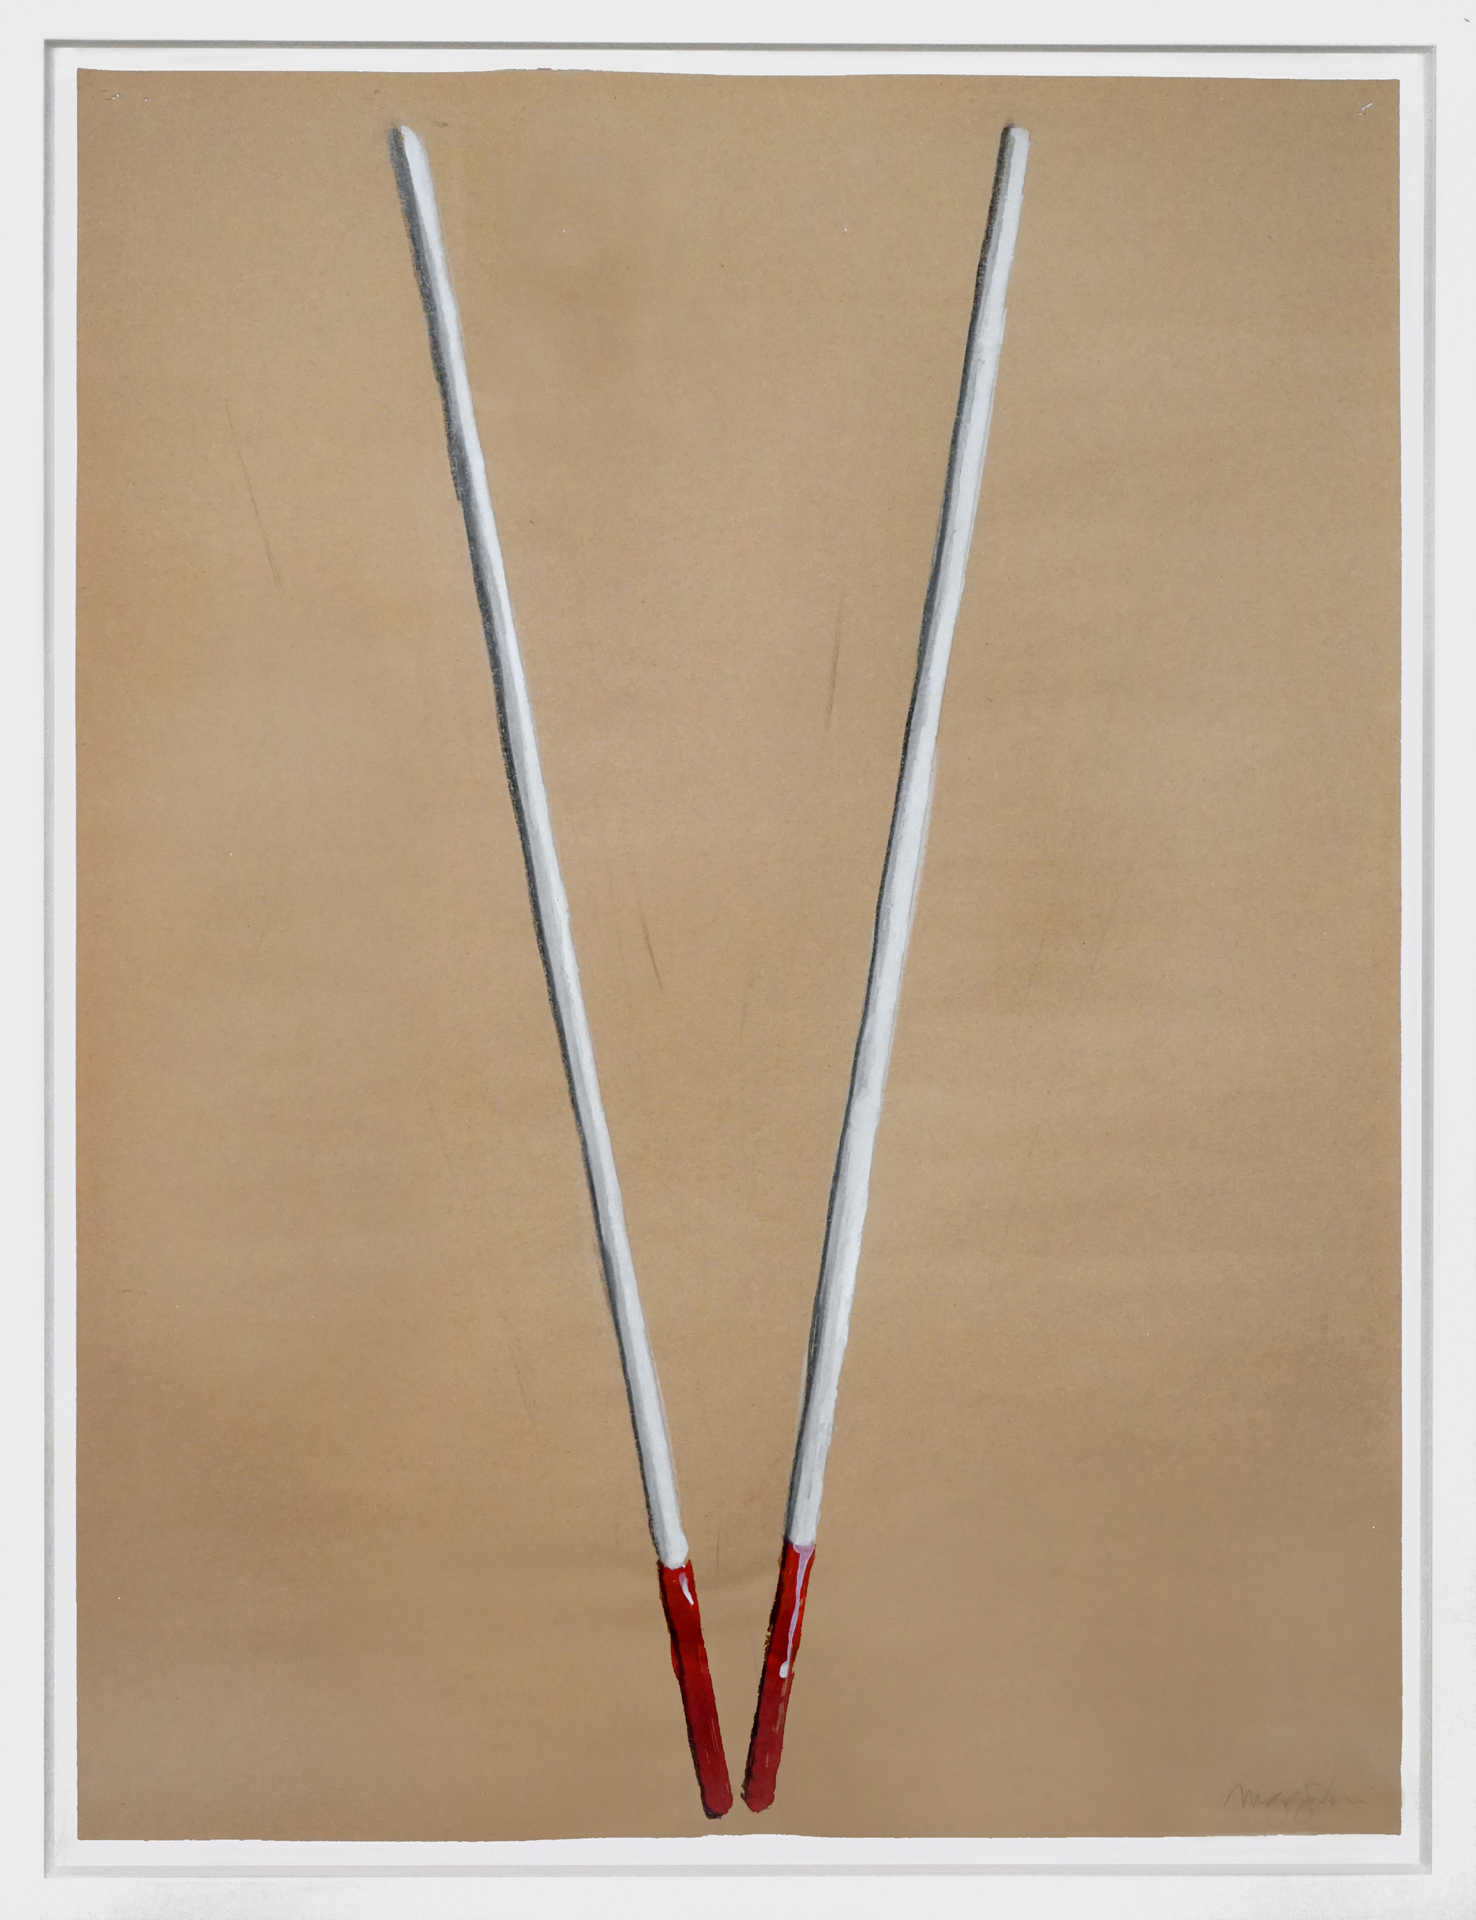 Untitled, (blind cane series), 1996